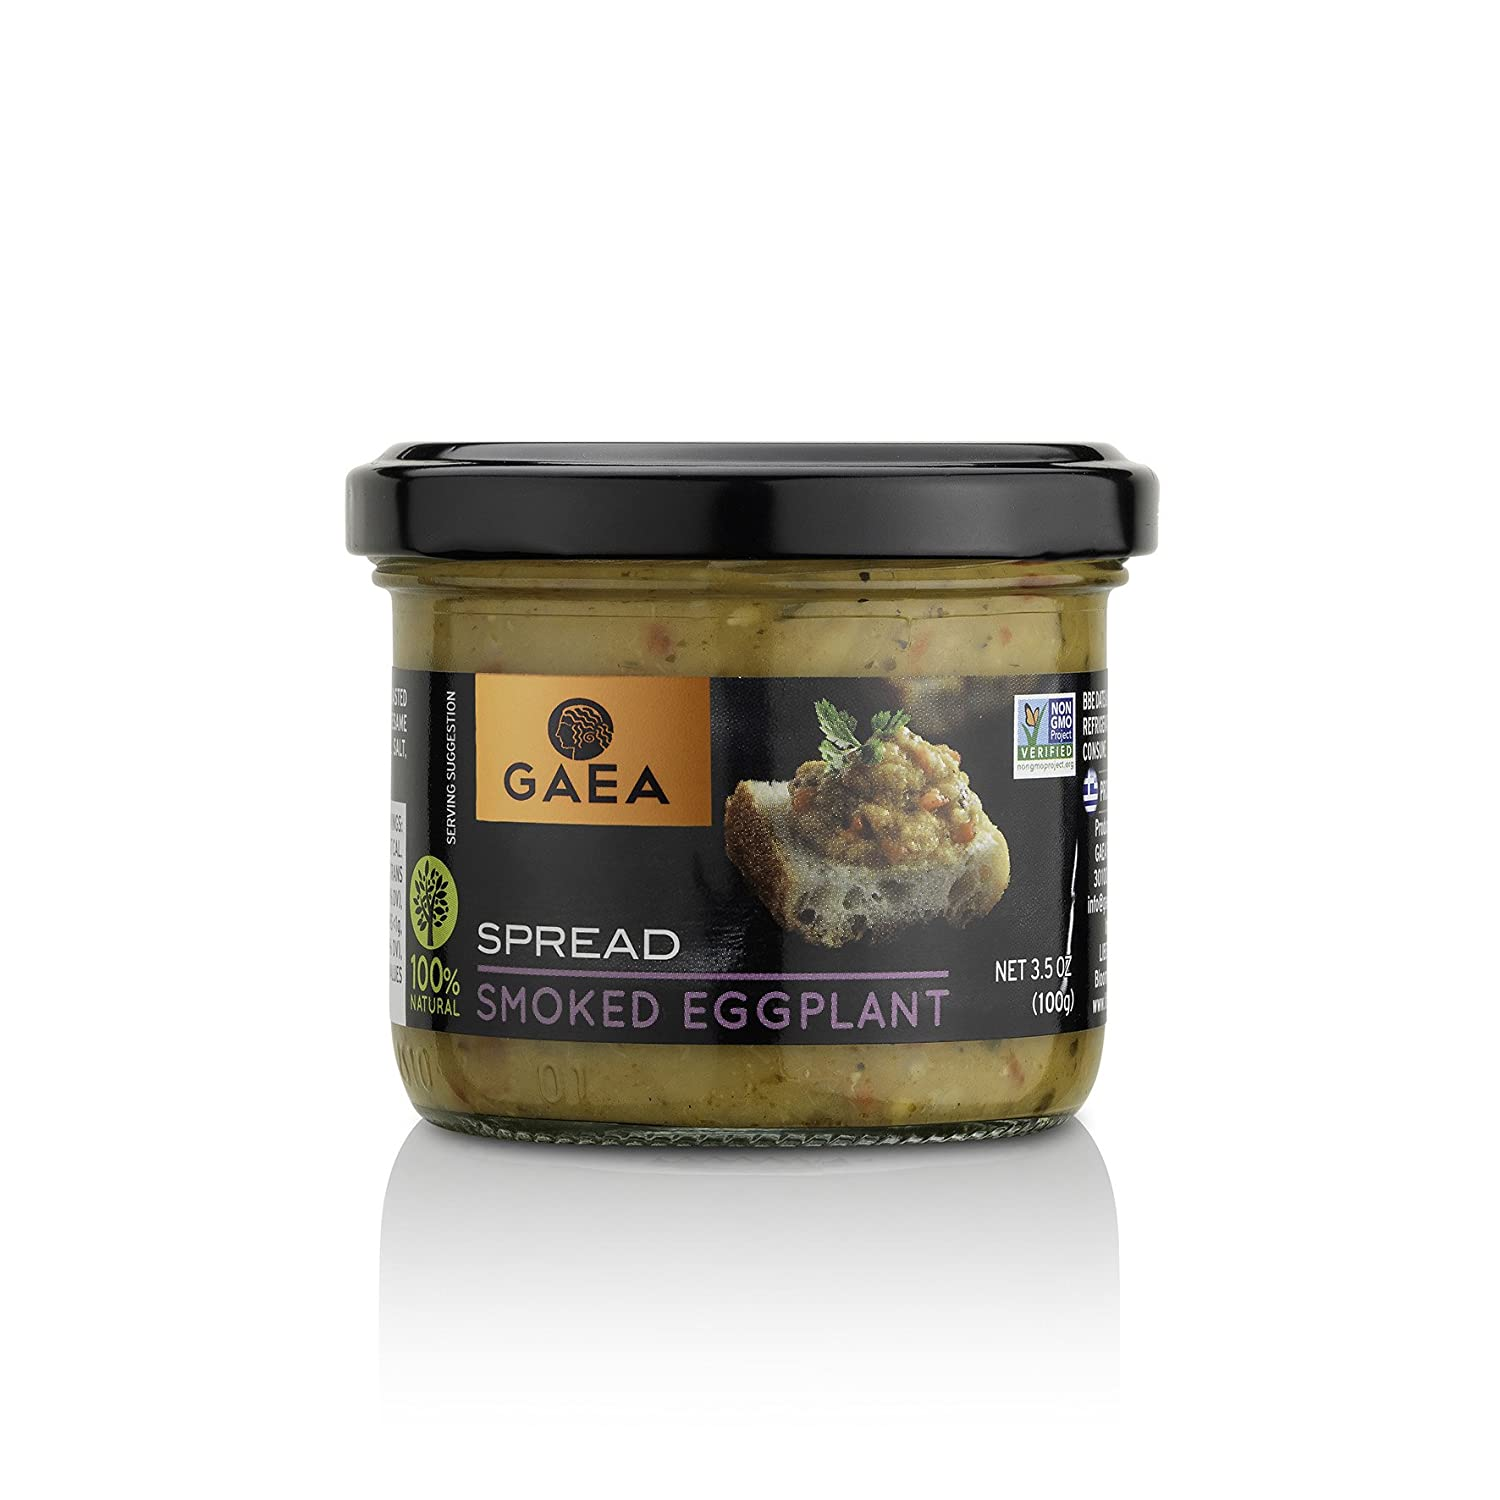 25% OFF Gaea Smoked Eggplant Spread Pack of 6-3.5 ounce Jar